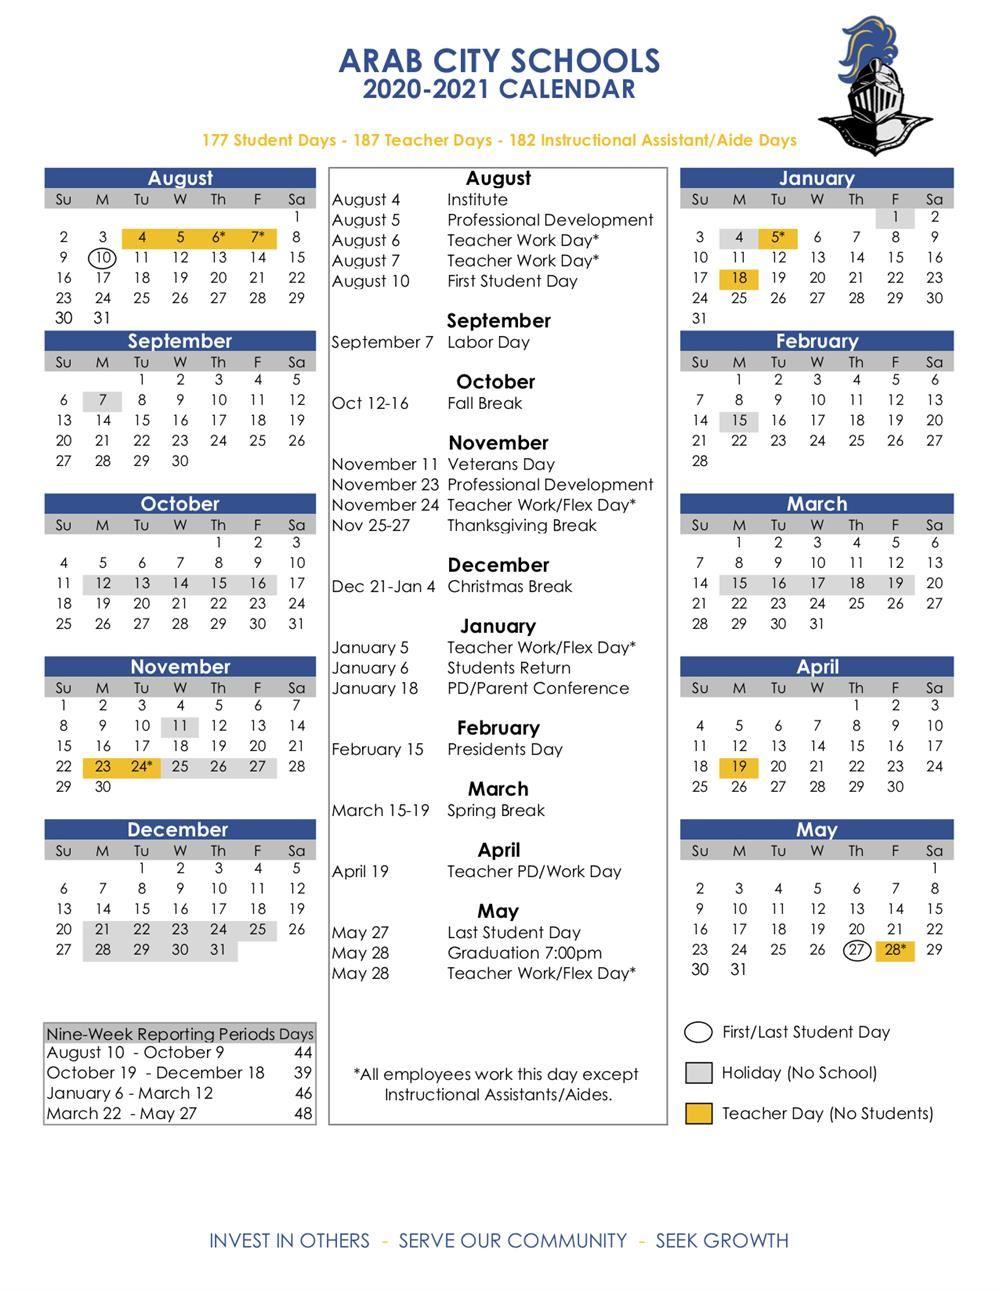 Uf 2020-21 Calendar Top 10 Punto Medio Noticias | Academic Calendar 2020 21